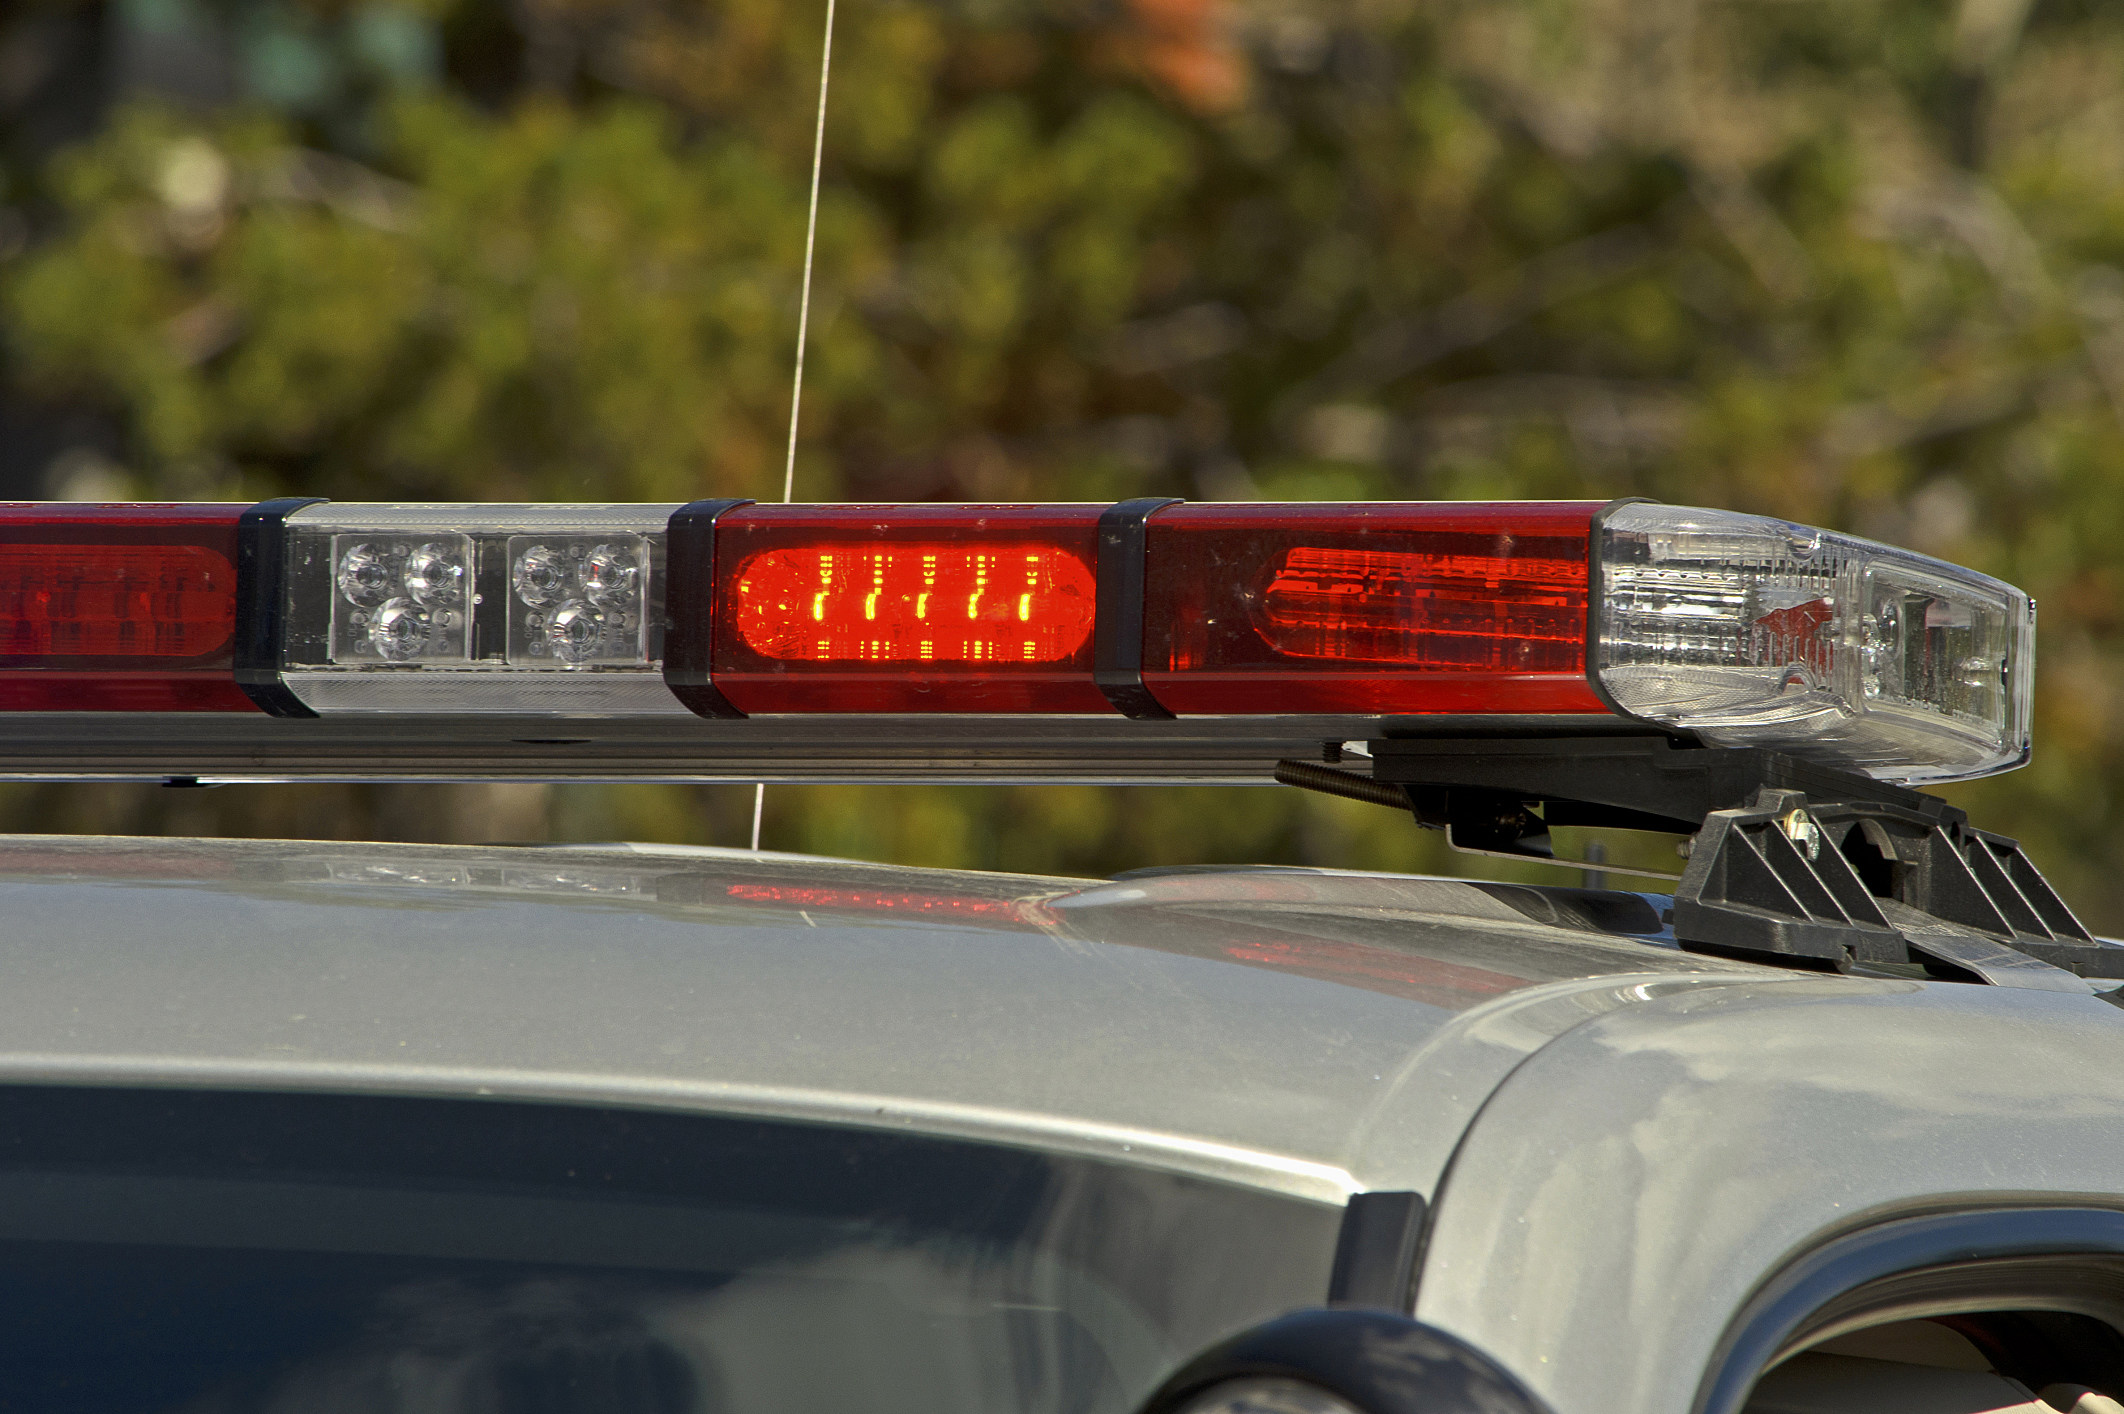 Route 34 closed in Wall Township: Truck takes out utility pole